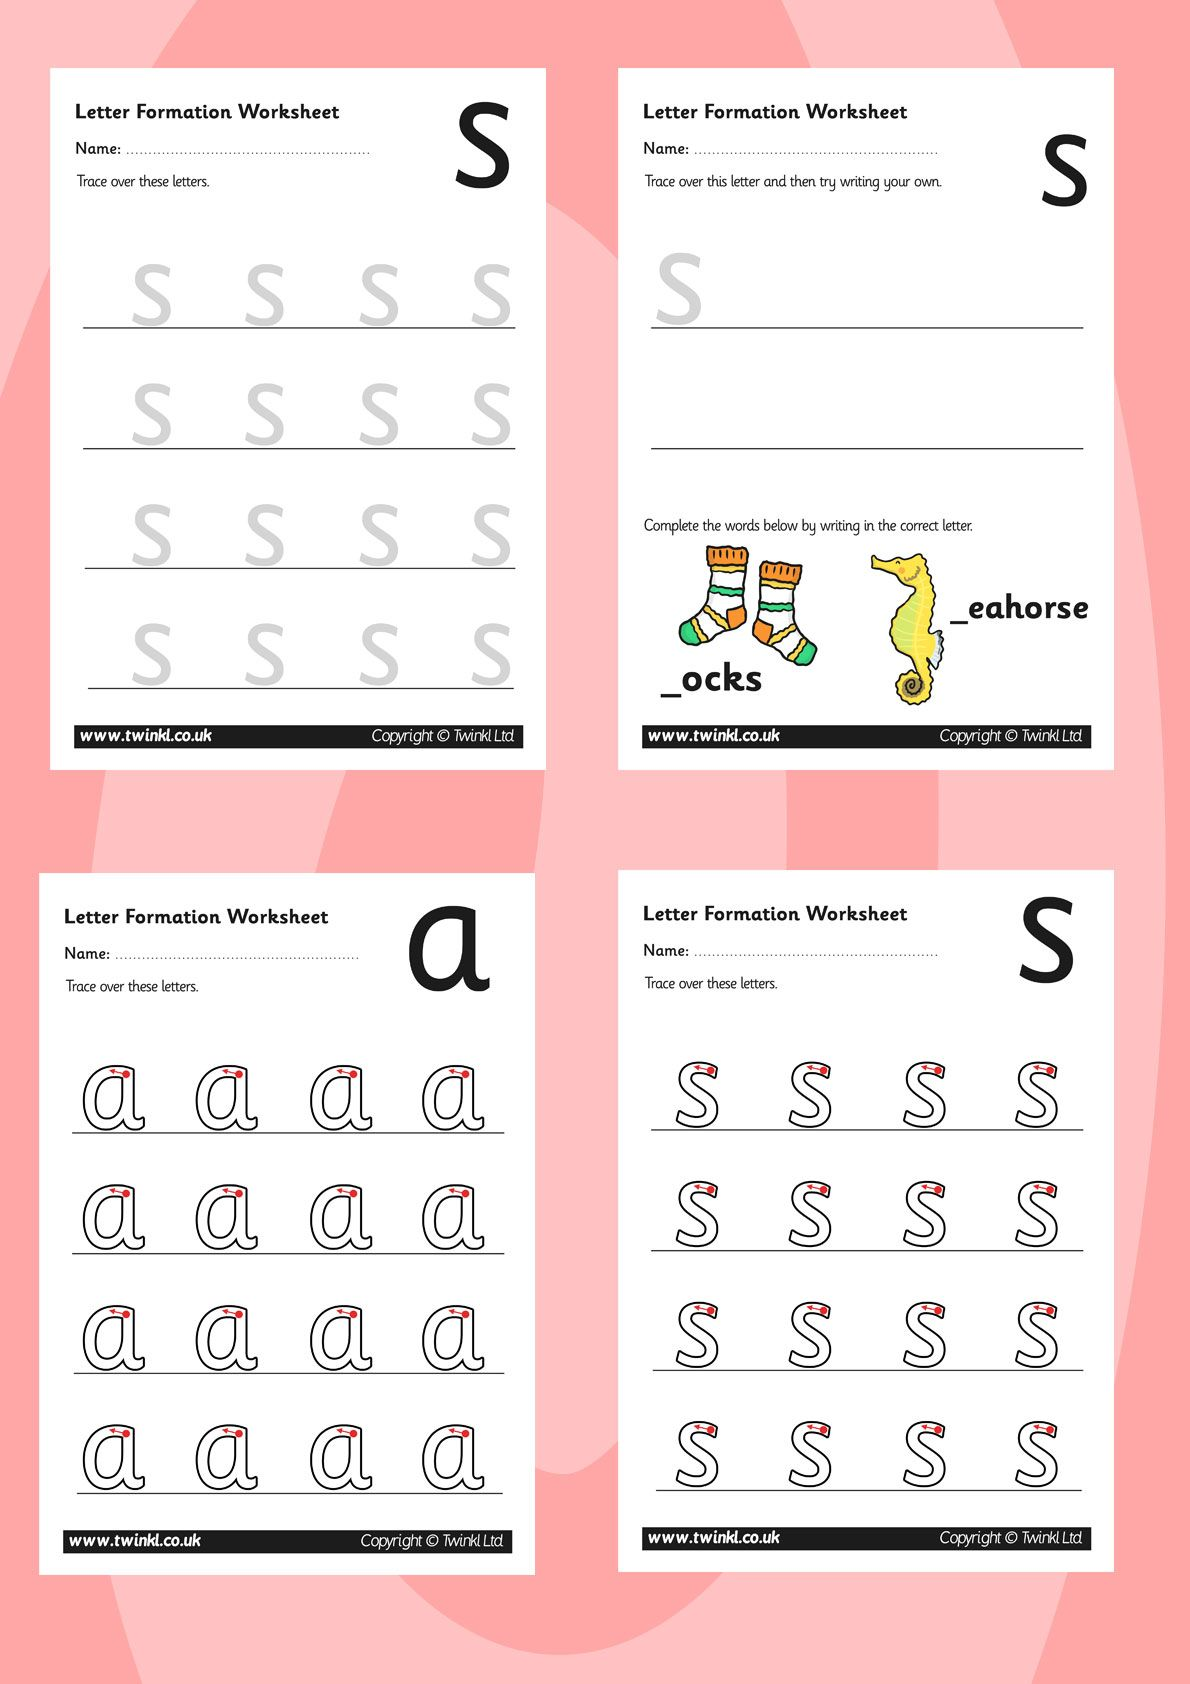 worksheet Letter Formation Worksheets twinkl resources phase 2 letter formation worksheets printable for primary